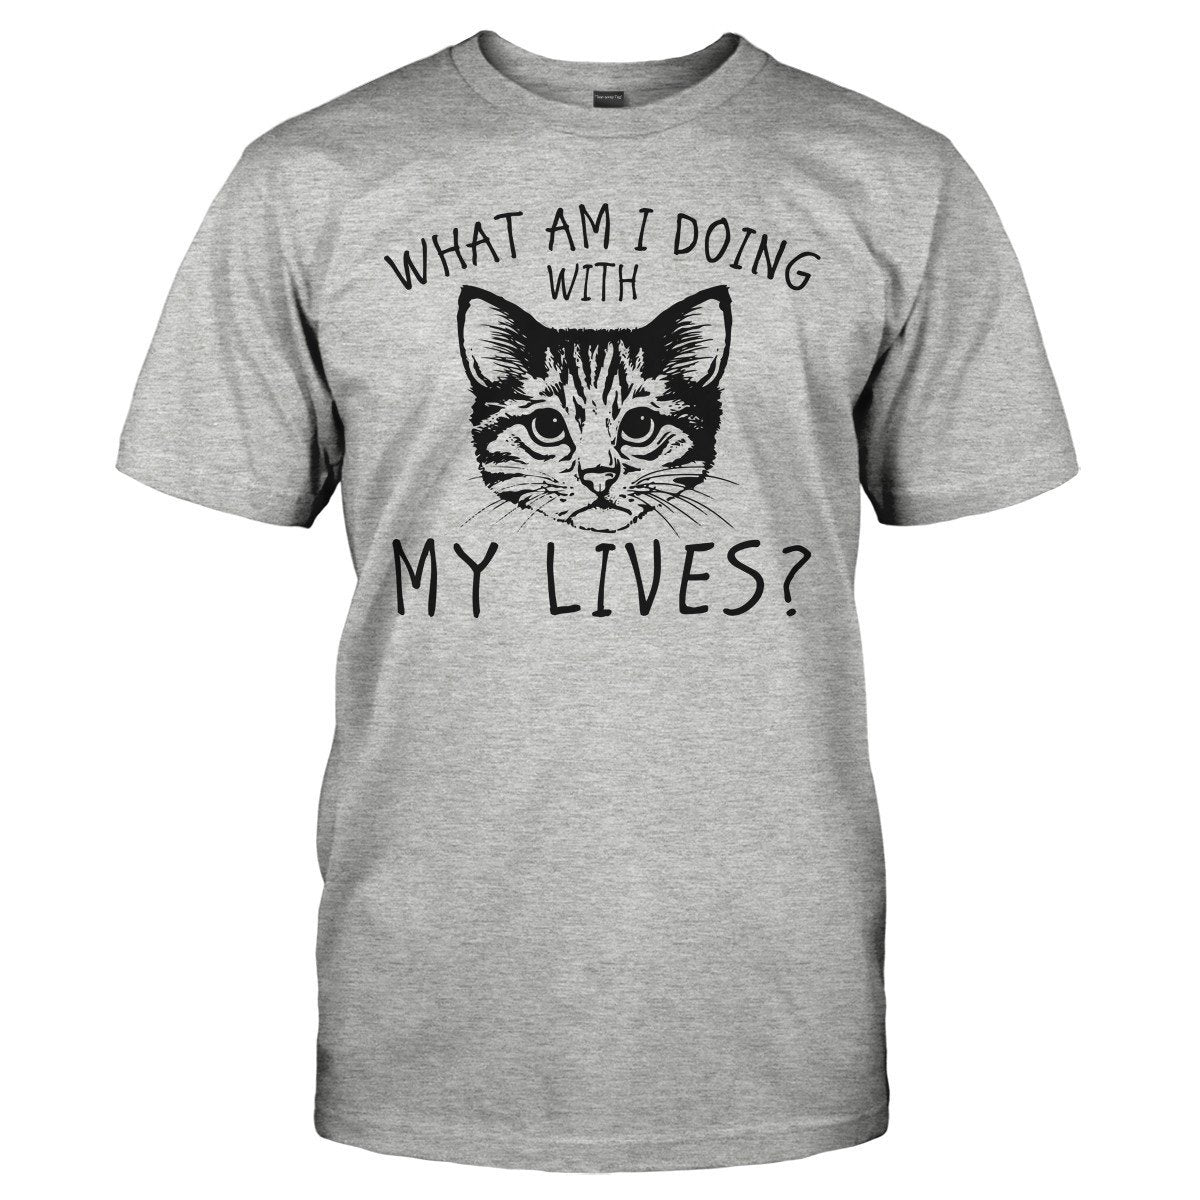 What Am I Doing With My Lives? - T Shirt